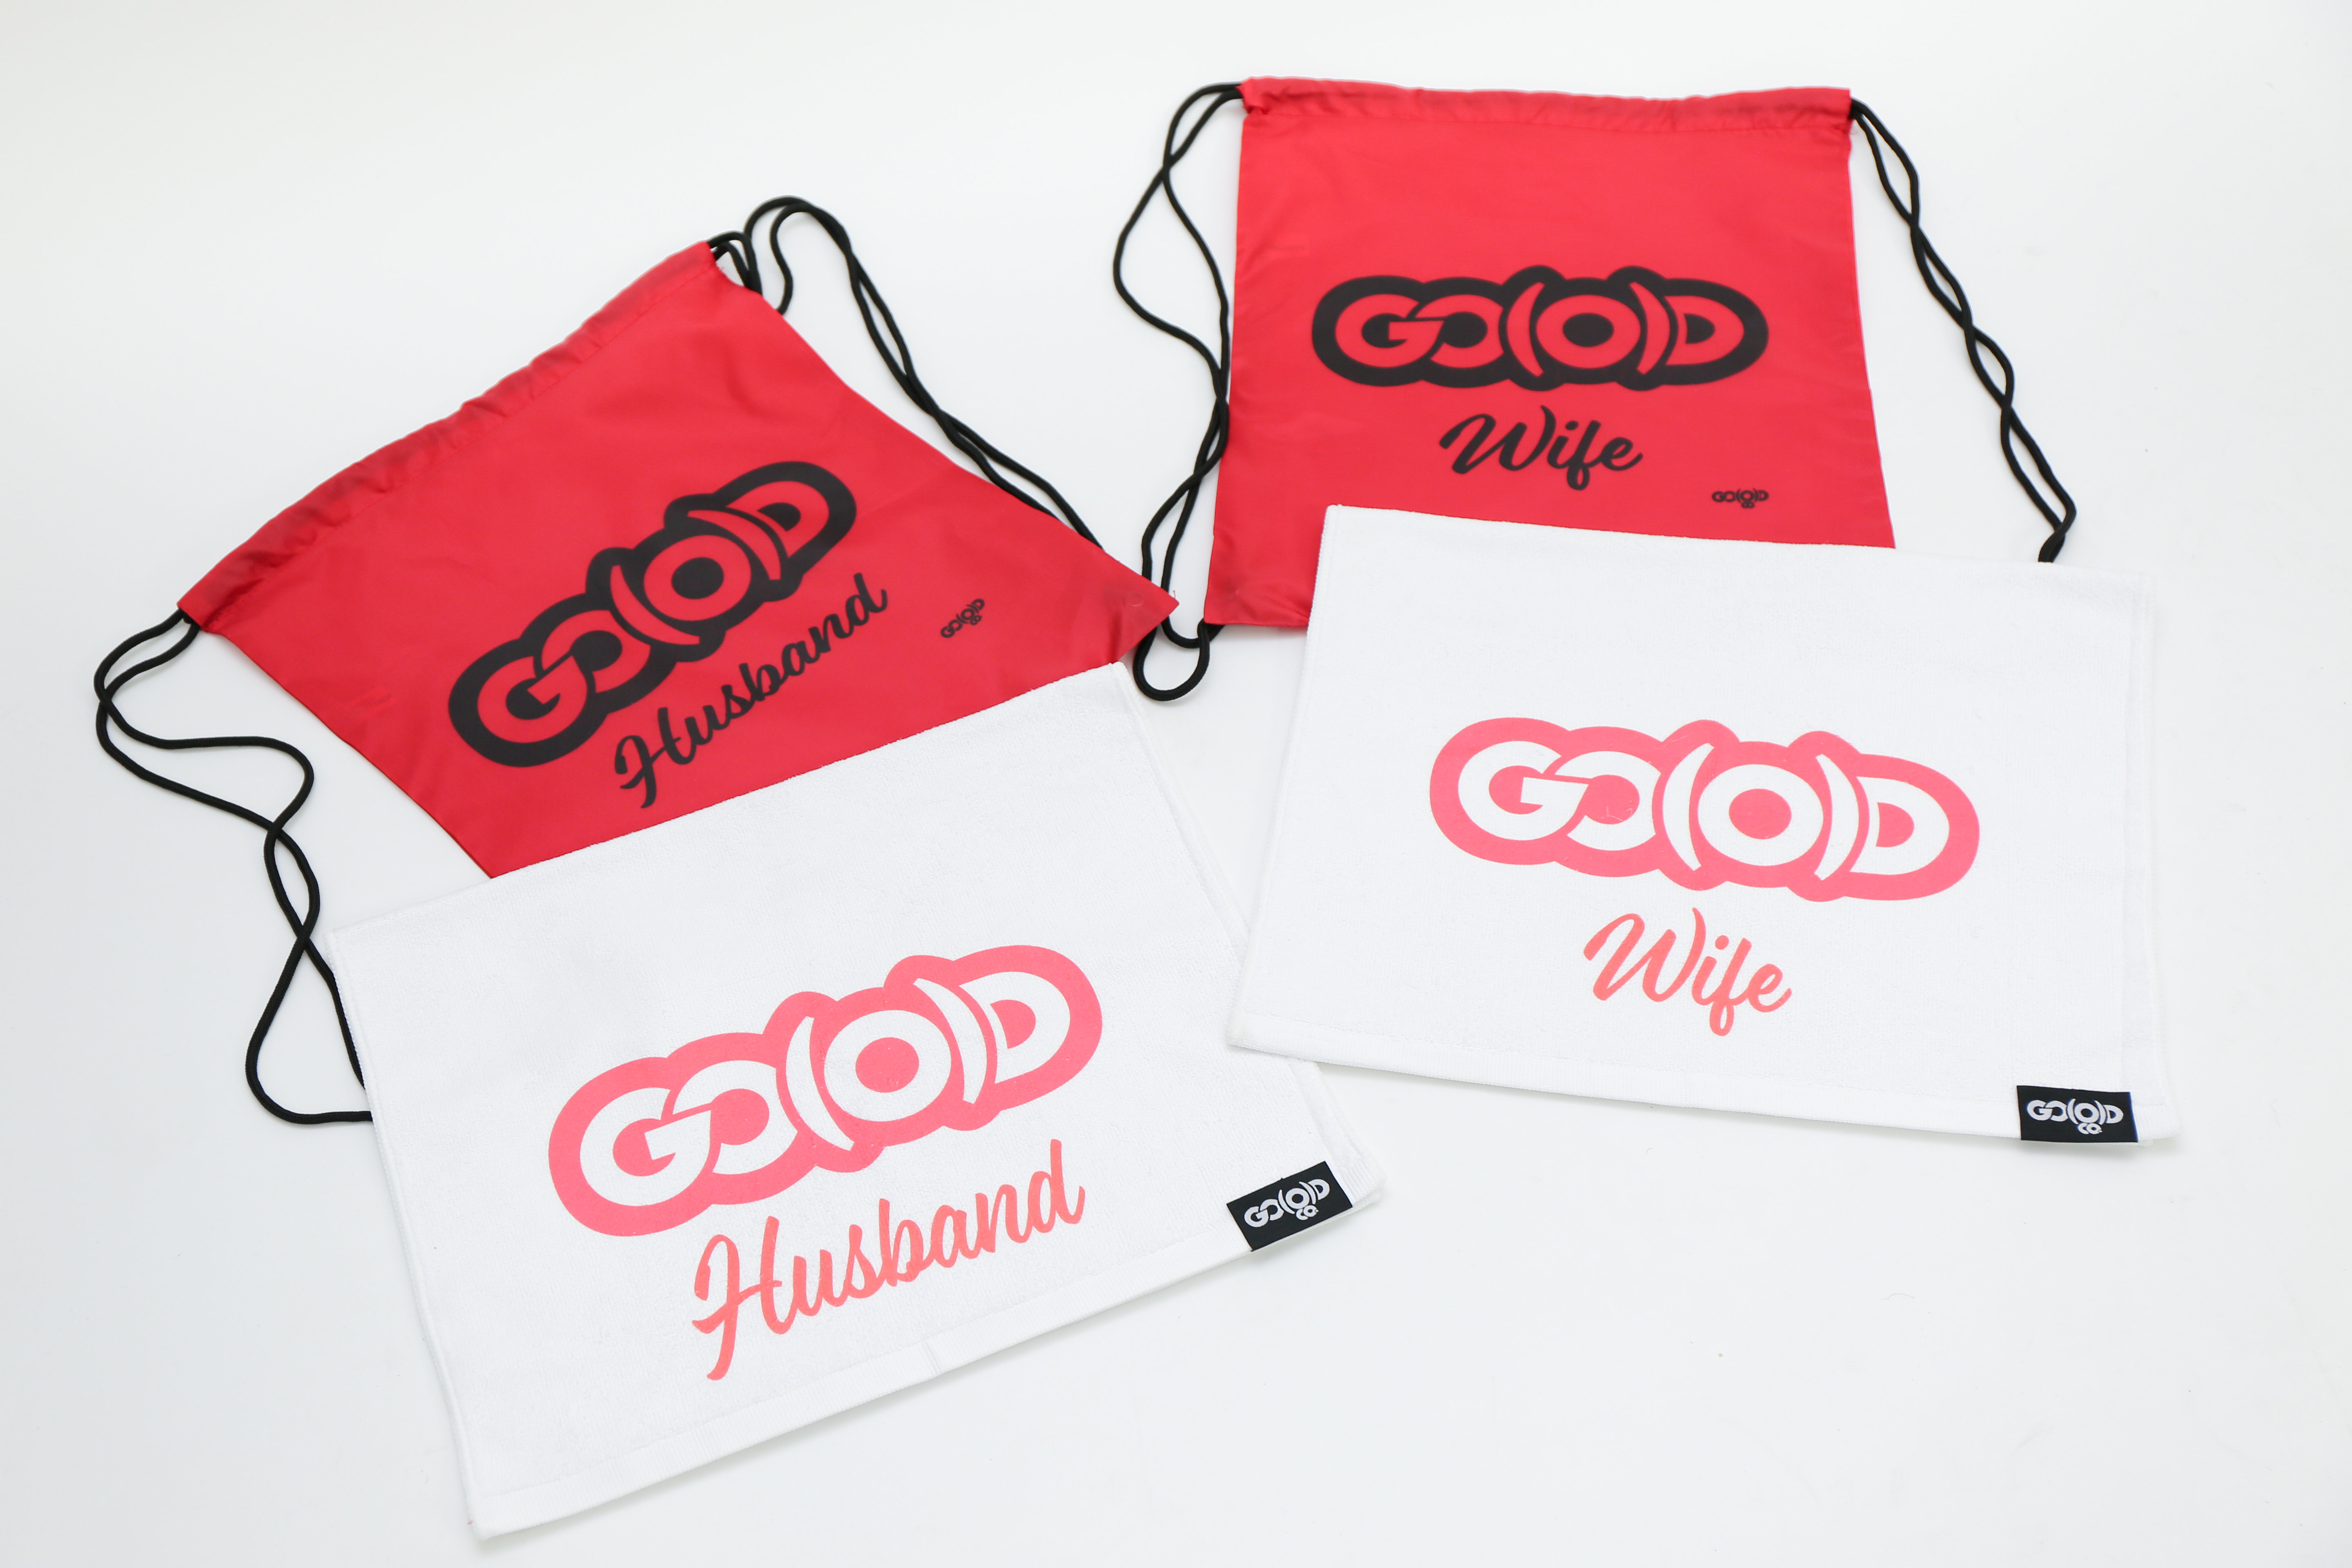 GO(O)D Hand towels and clinch bags